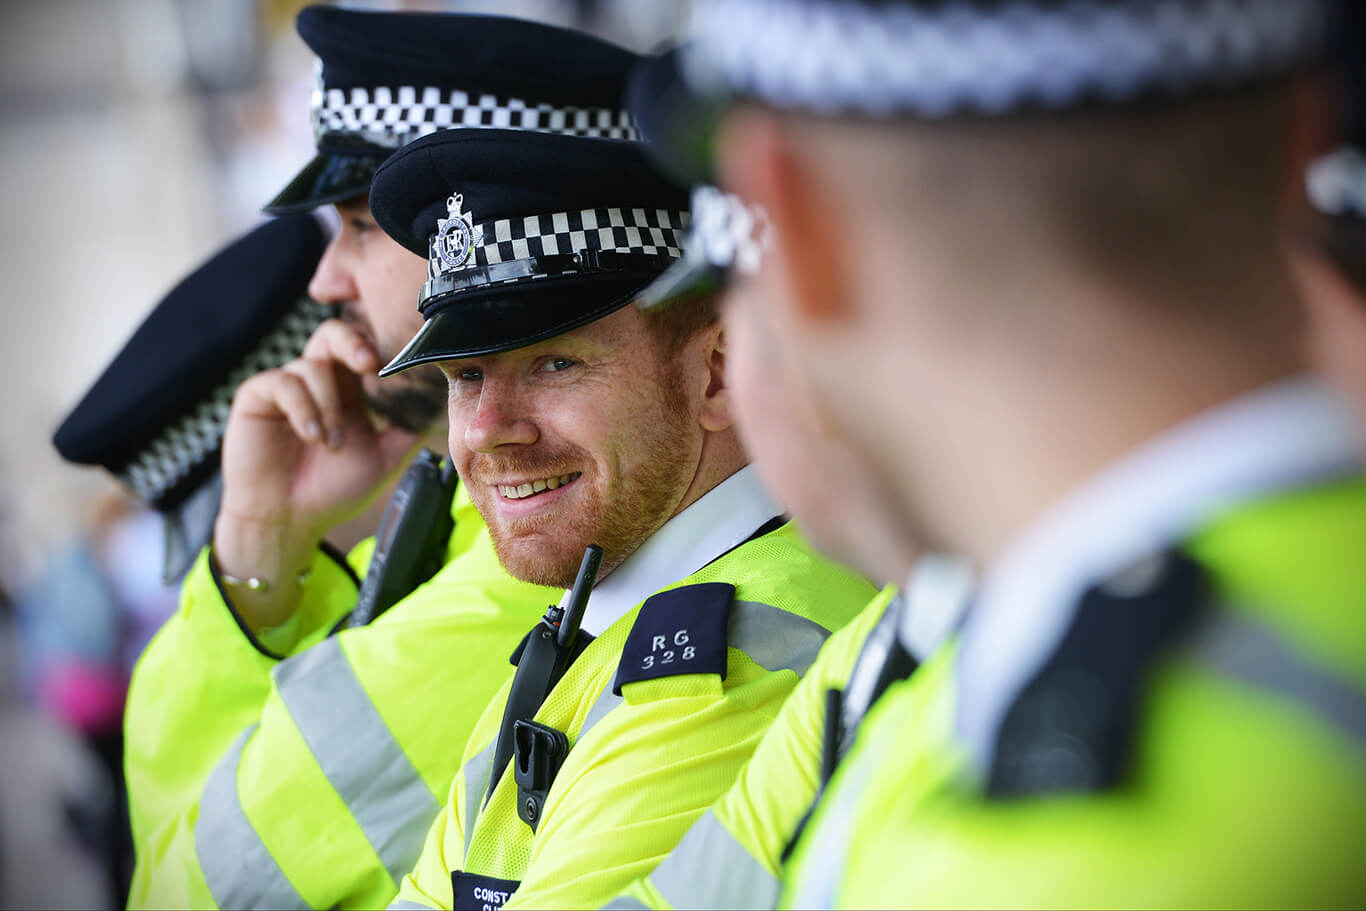 North Yorkshire Police Mission Critical Solutions